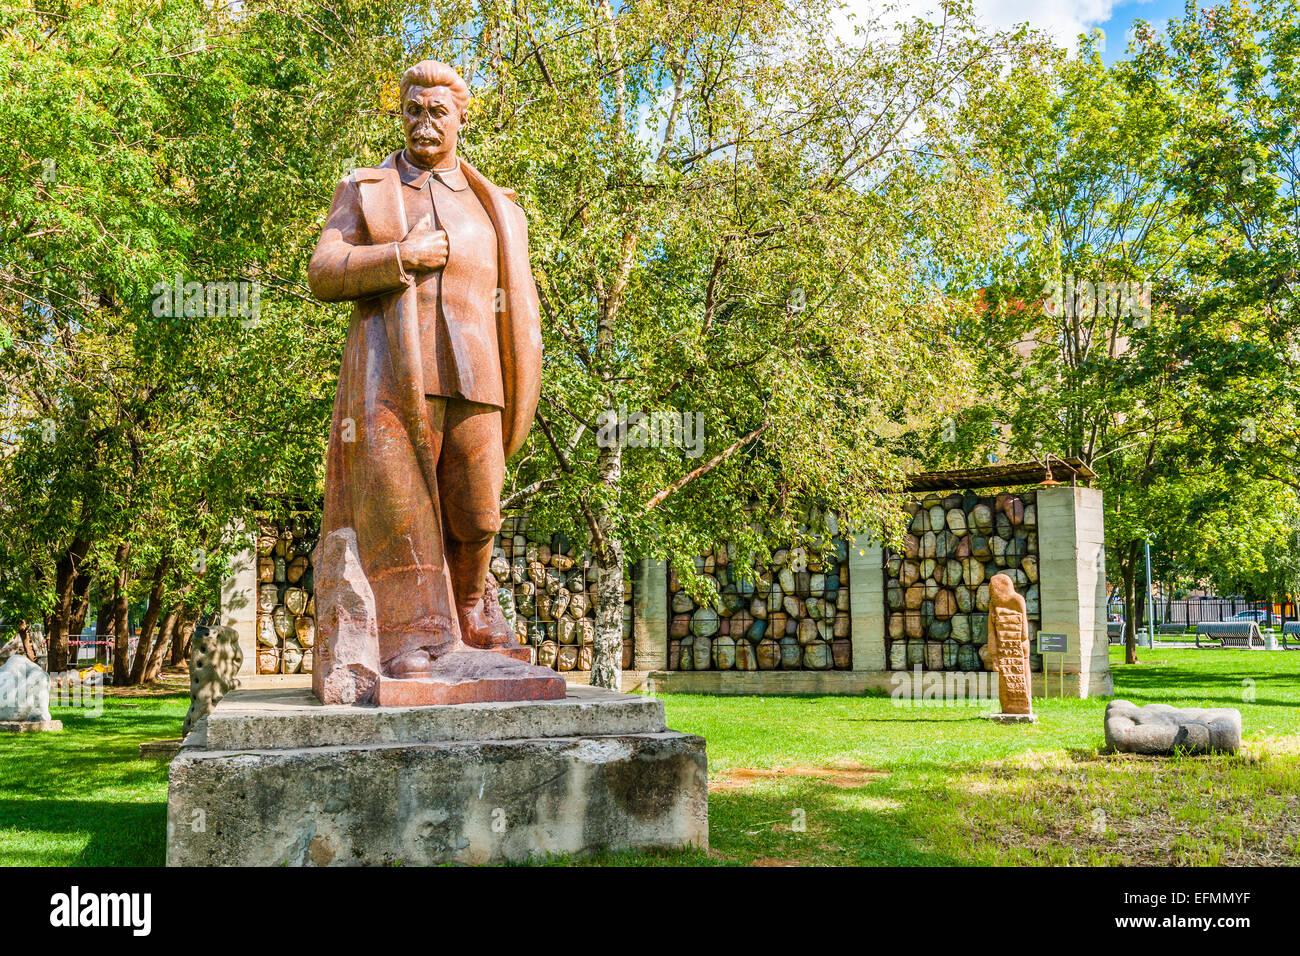 Monuments to Stalin and monument to victims of Stalinism - Stock Image